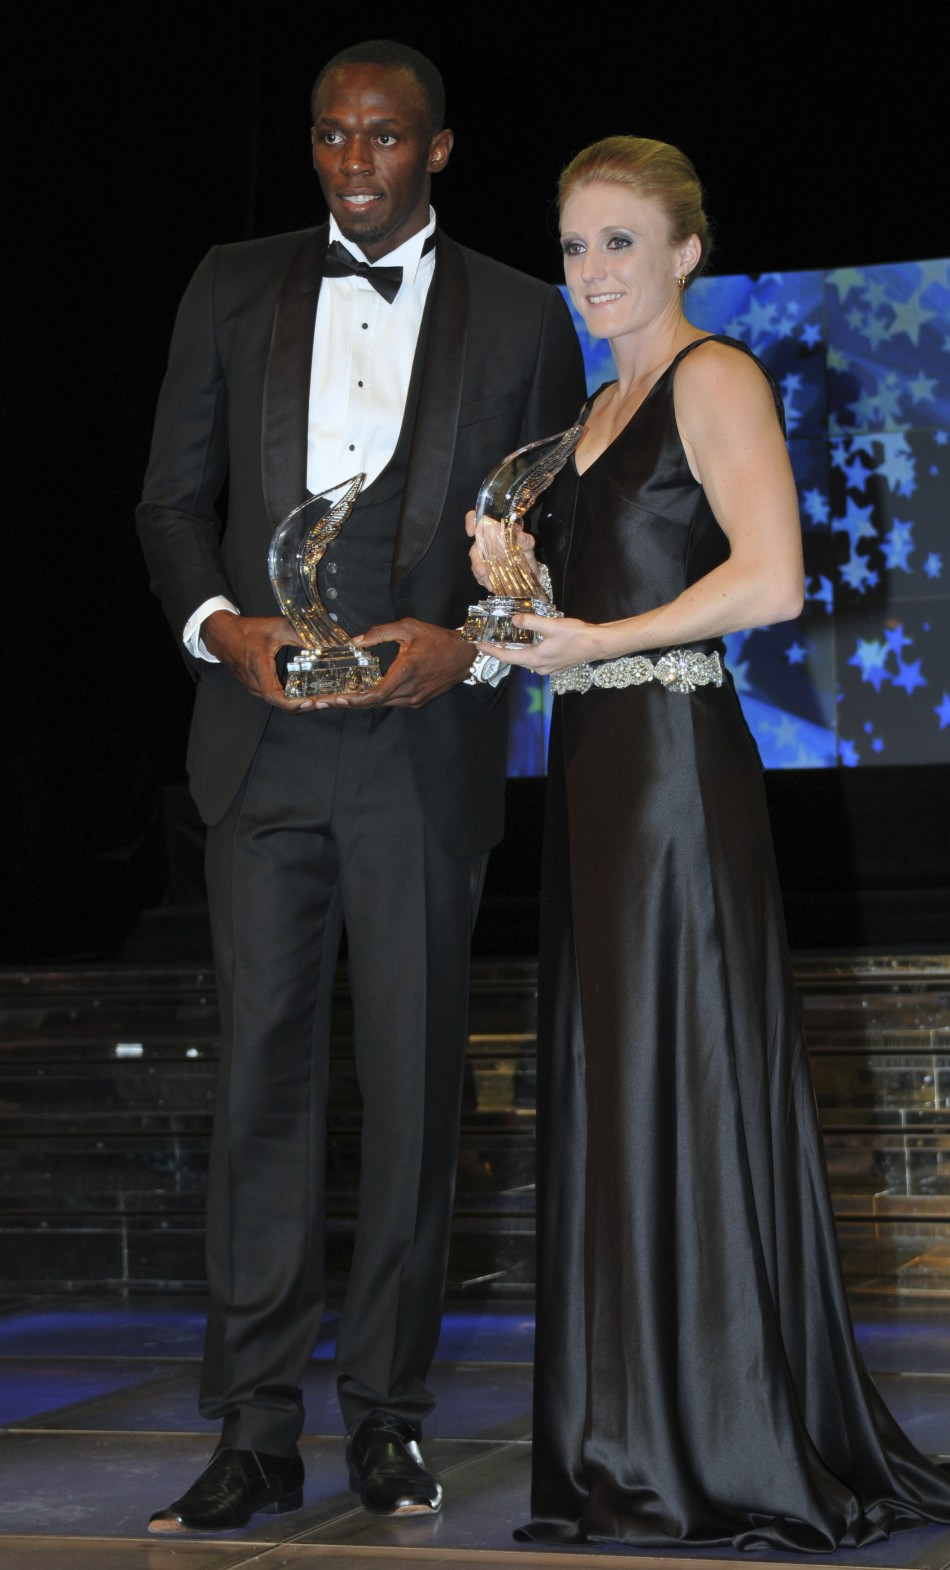 IAAF Athlete of the Year Awards - Sally Pearson, Usain Bolt